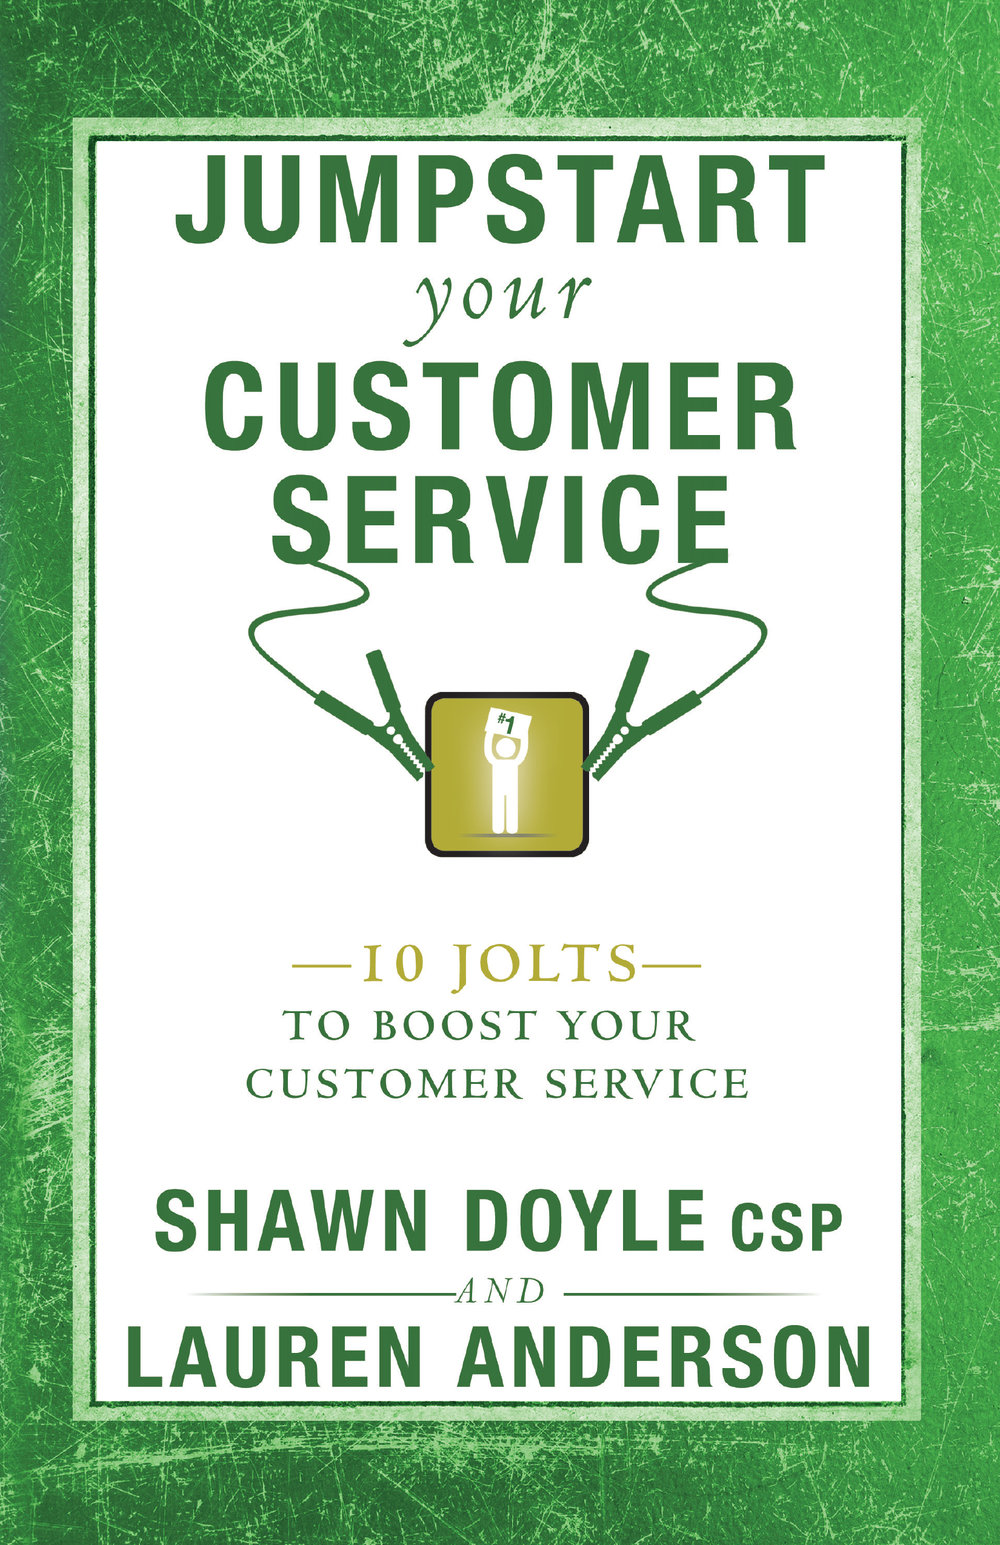 Jumpstart Your Customer Service - Shawn Doyle CSP & Lauren Anderson